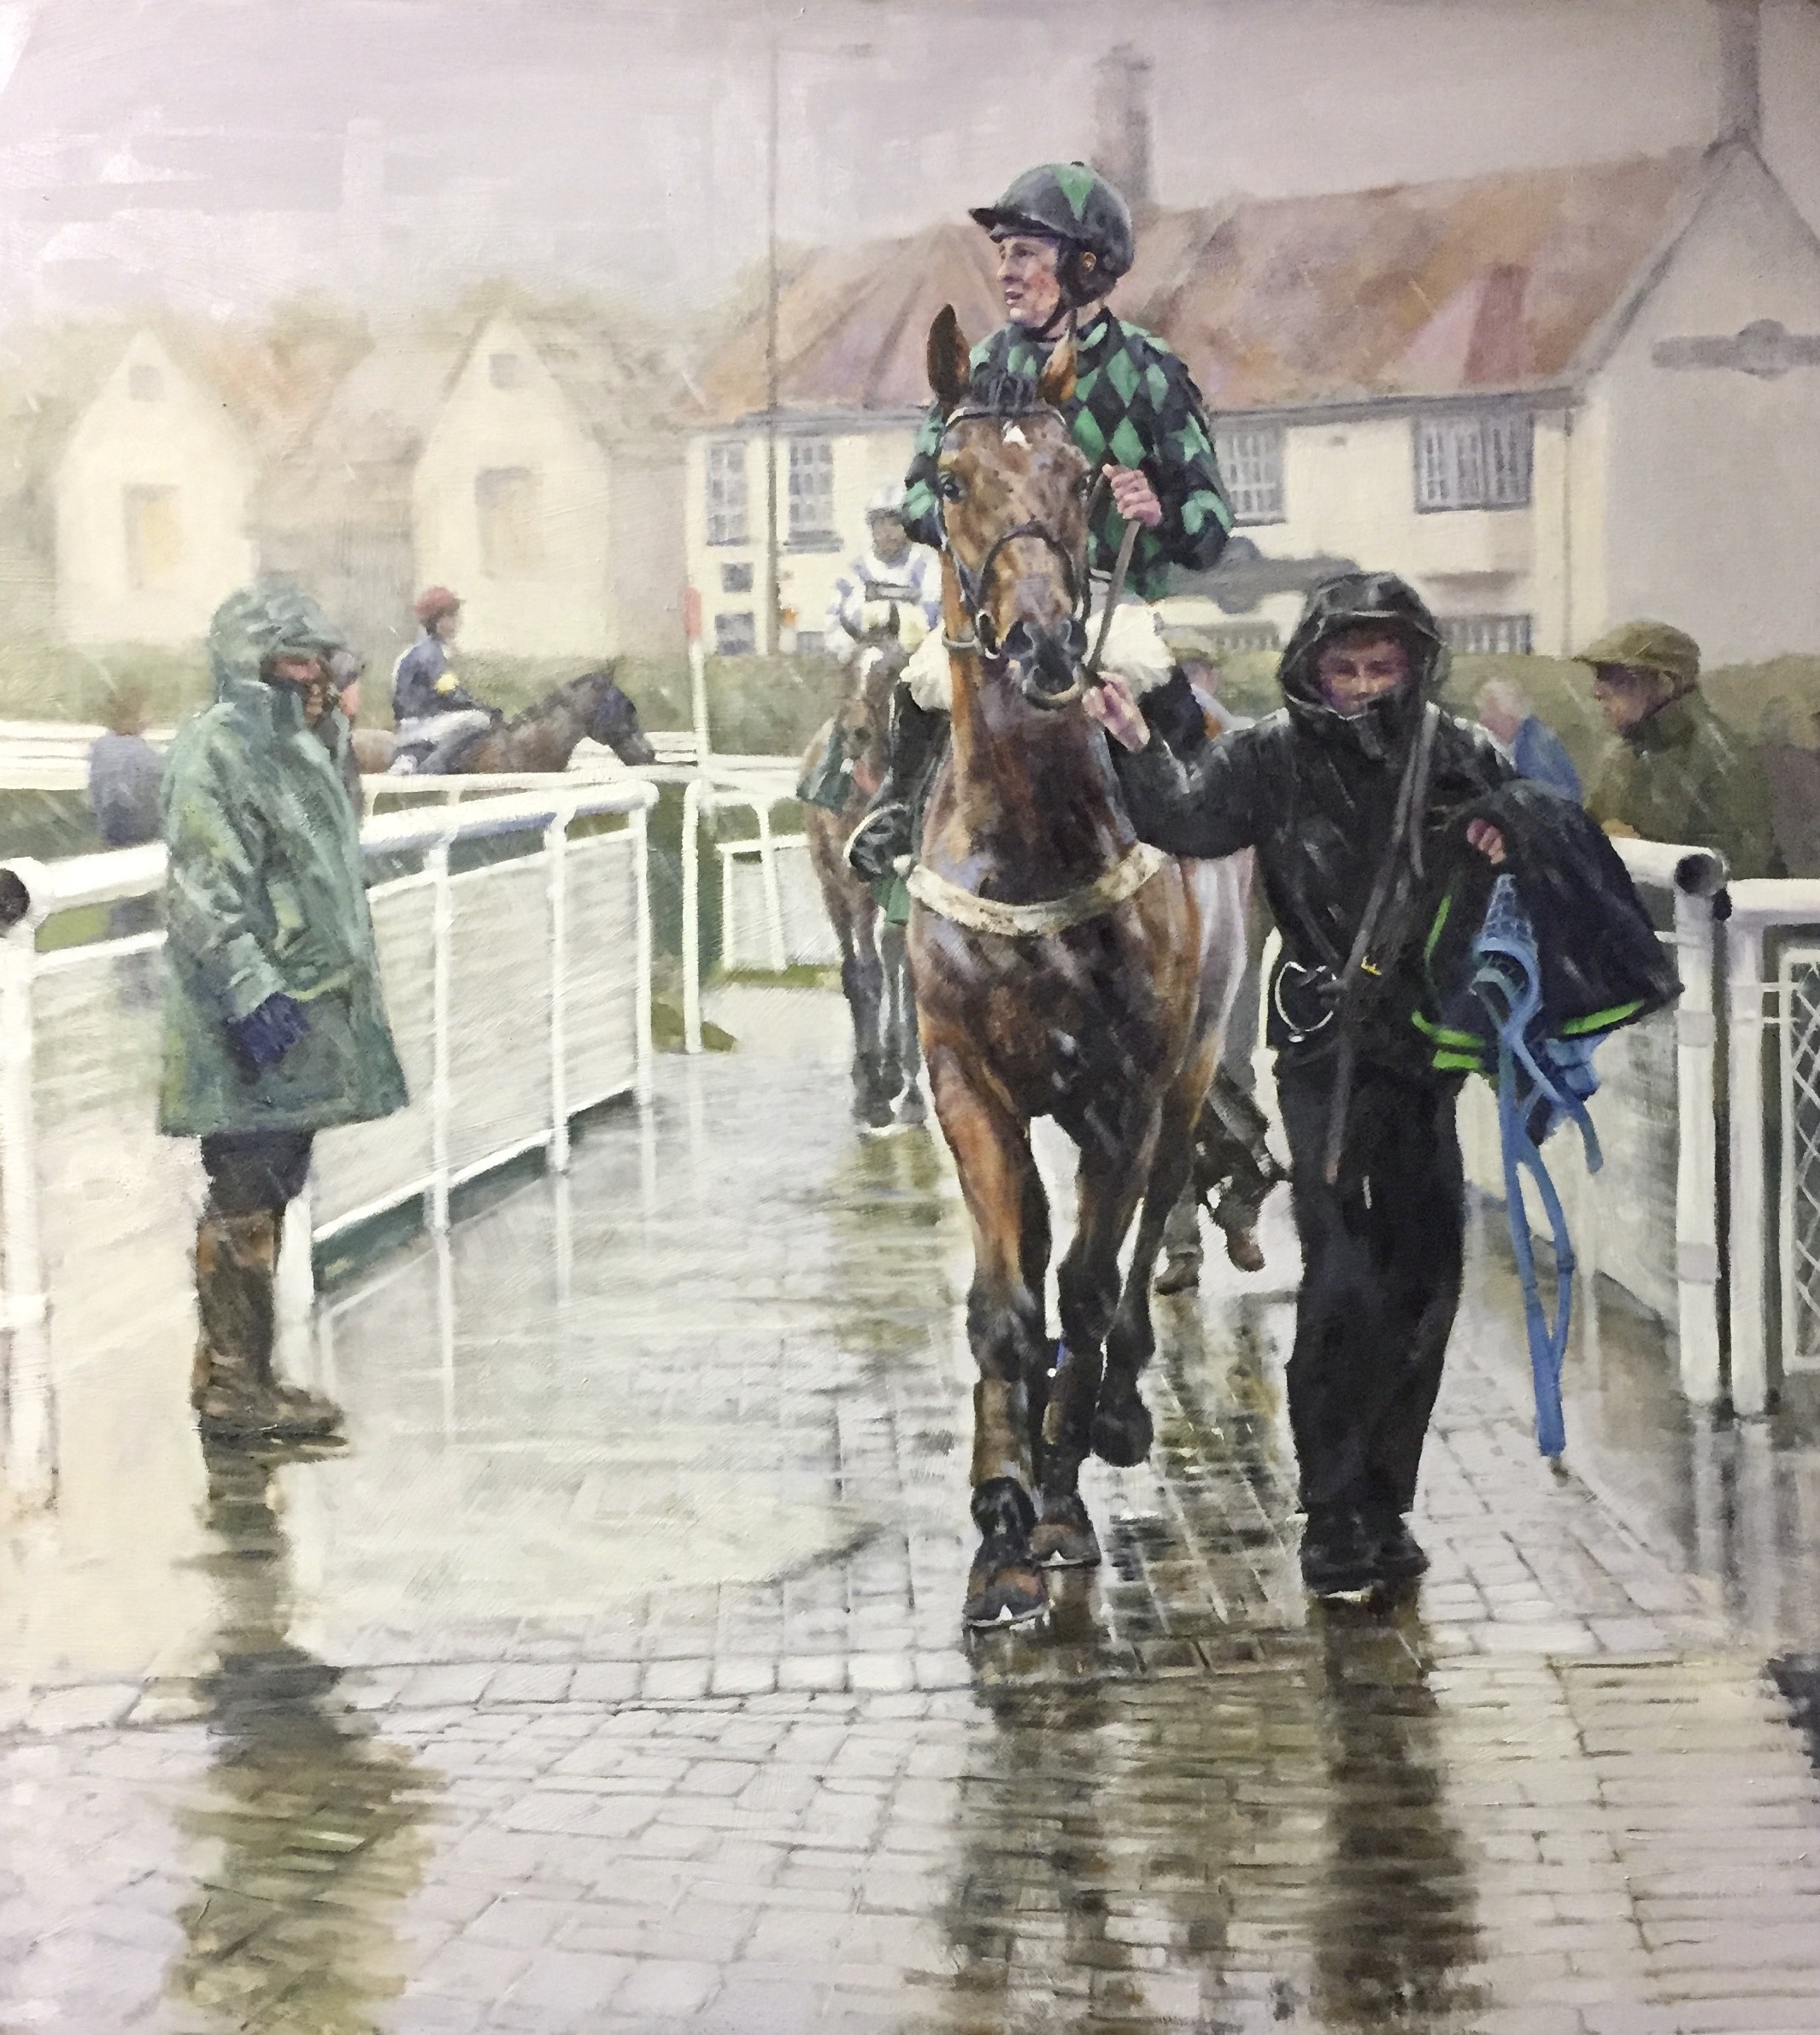 'Wet Day at Catterick'